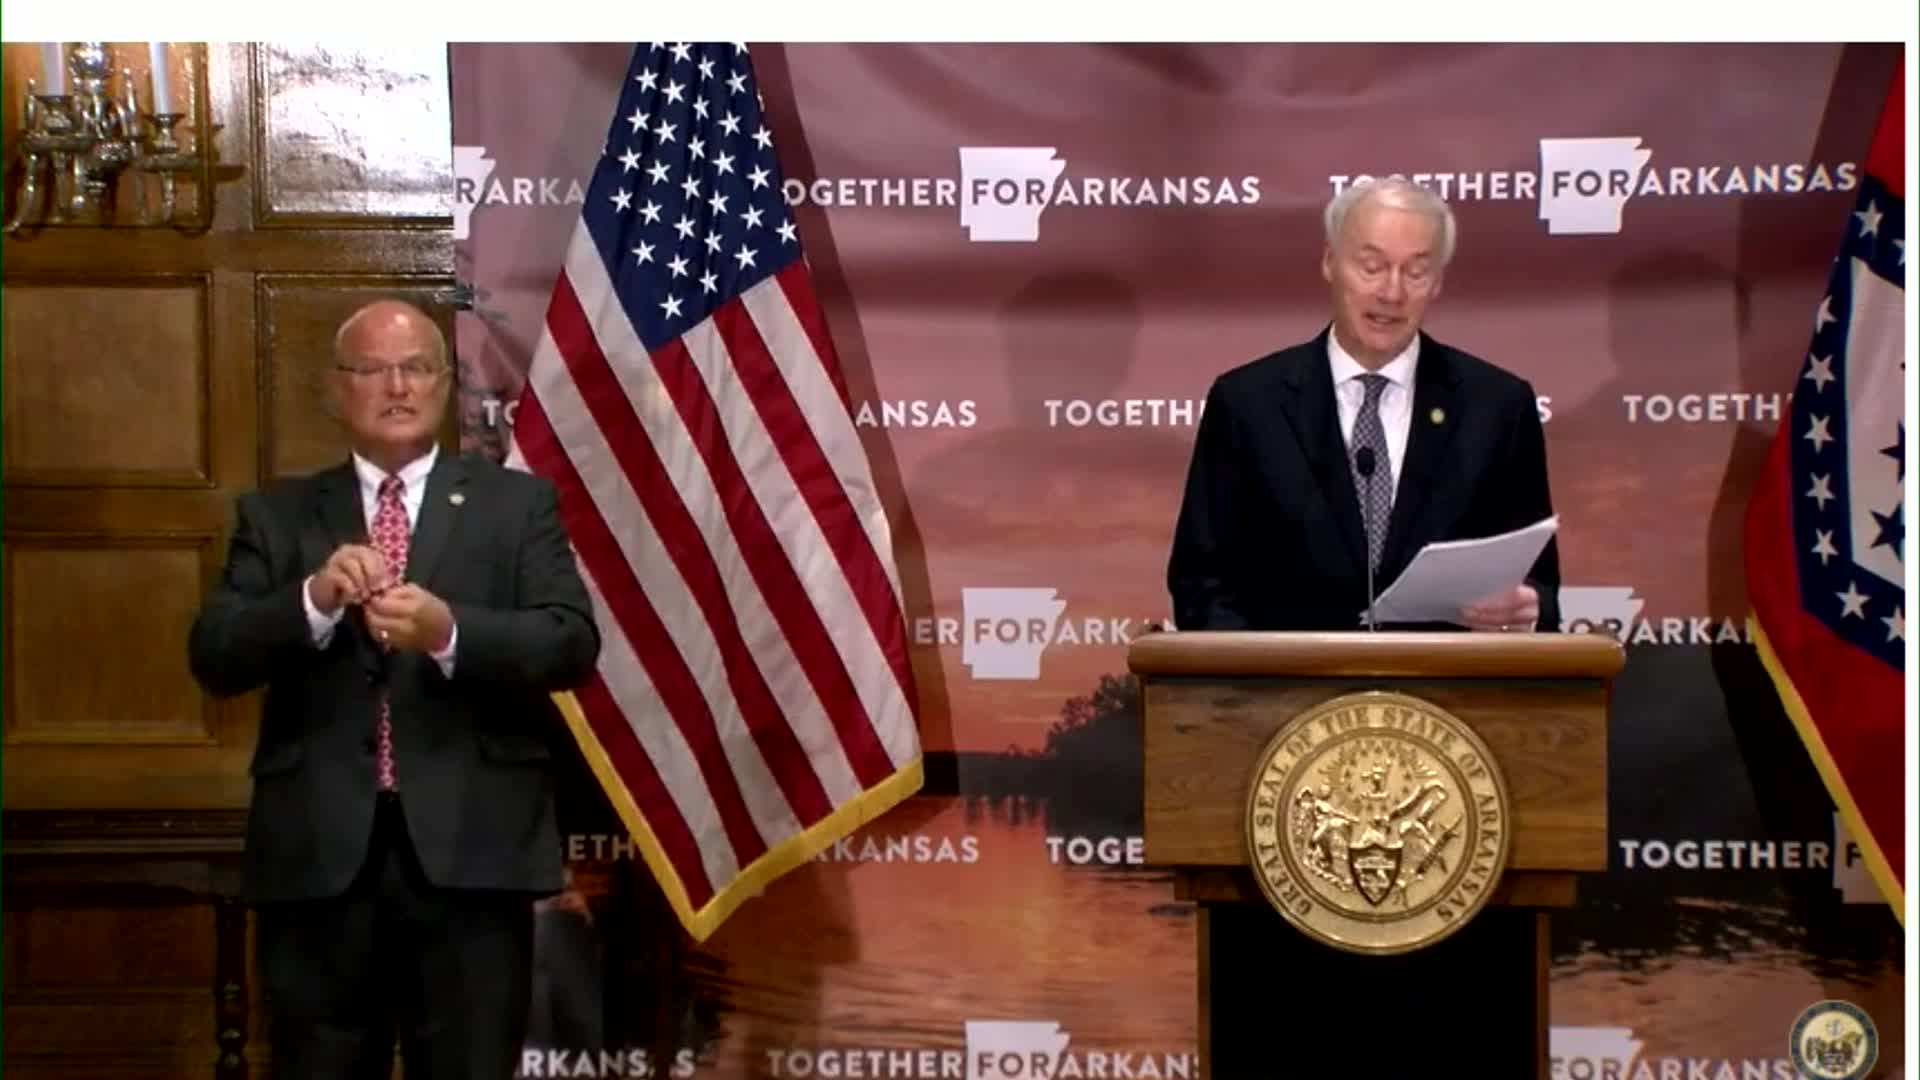 Arkansas Gov. Asa Hutchinson speaks during a press conference in Little Rock, Arkansas, on July 31.